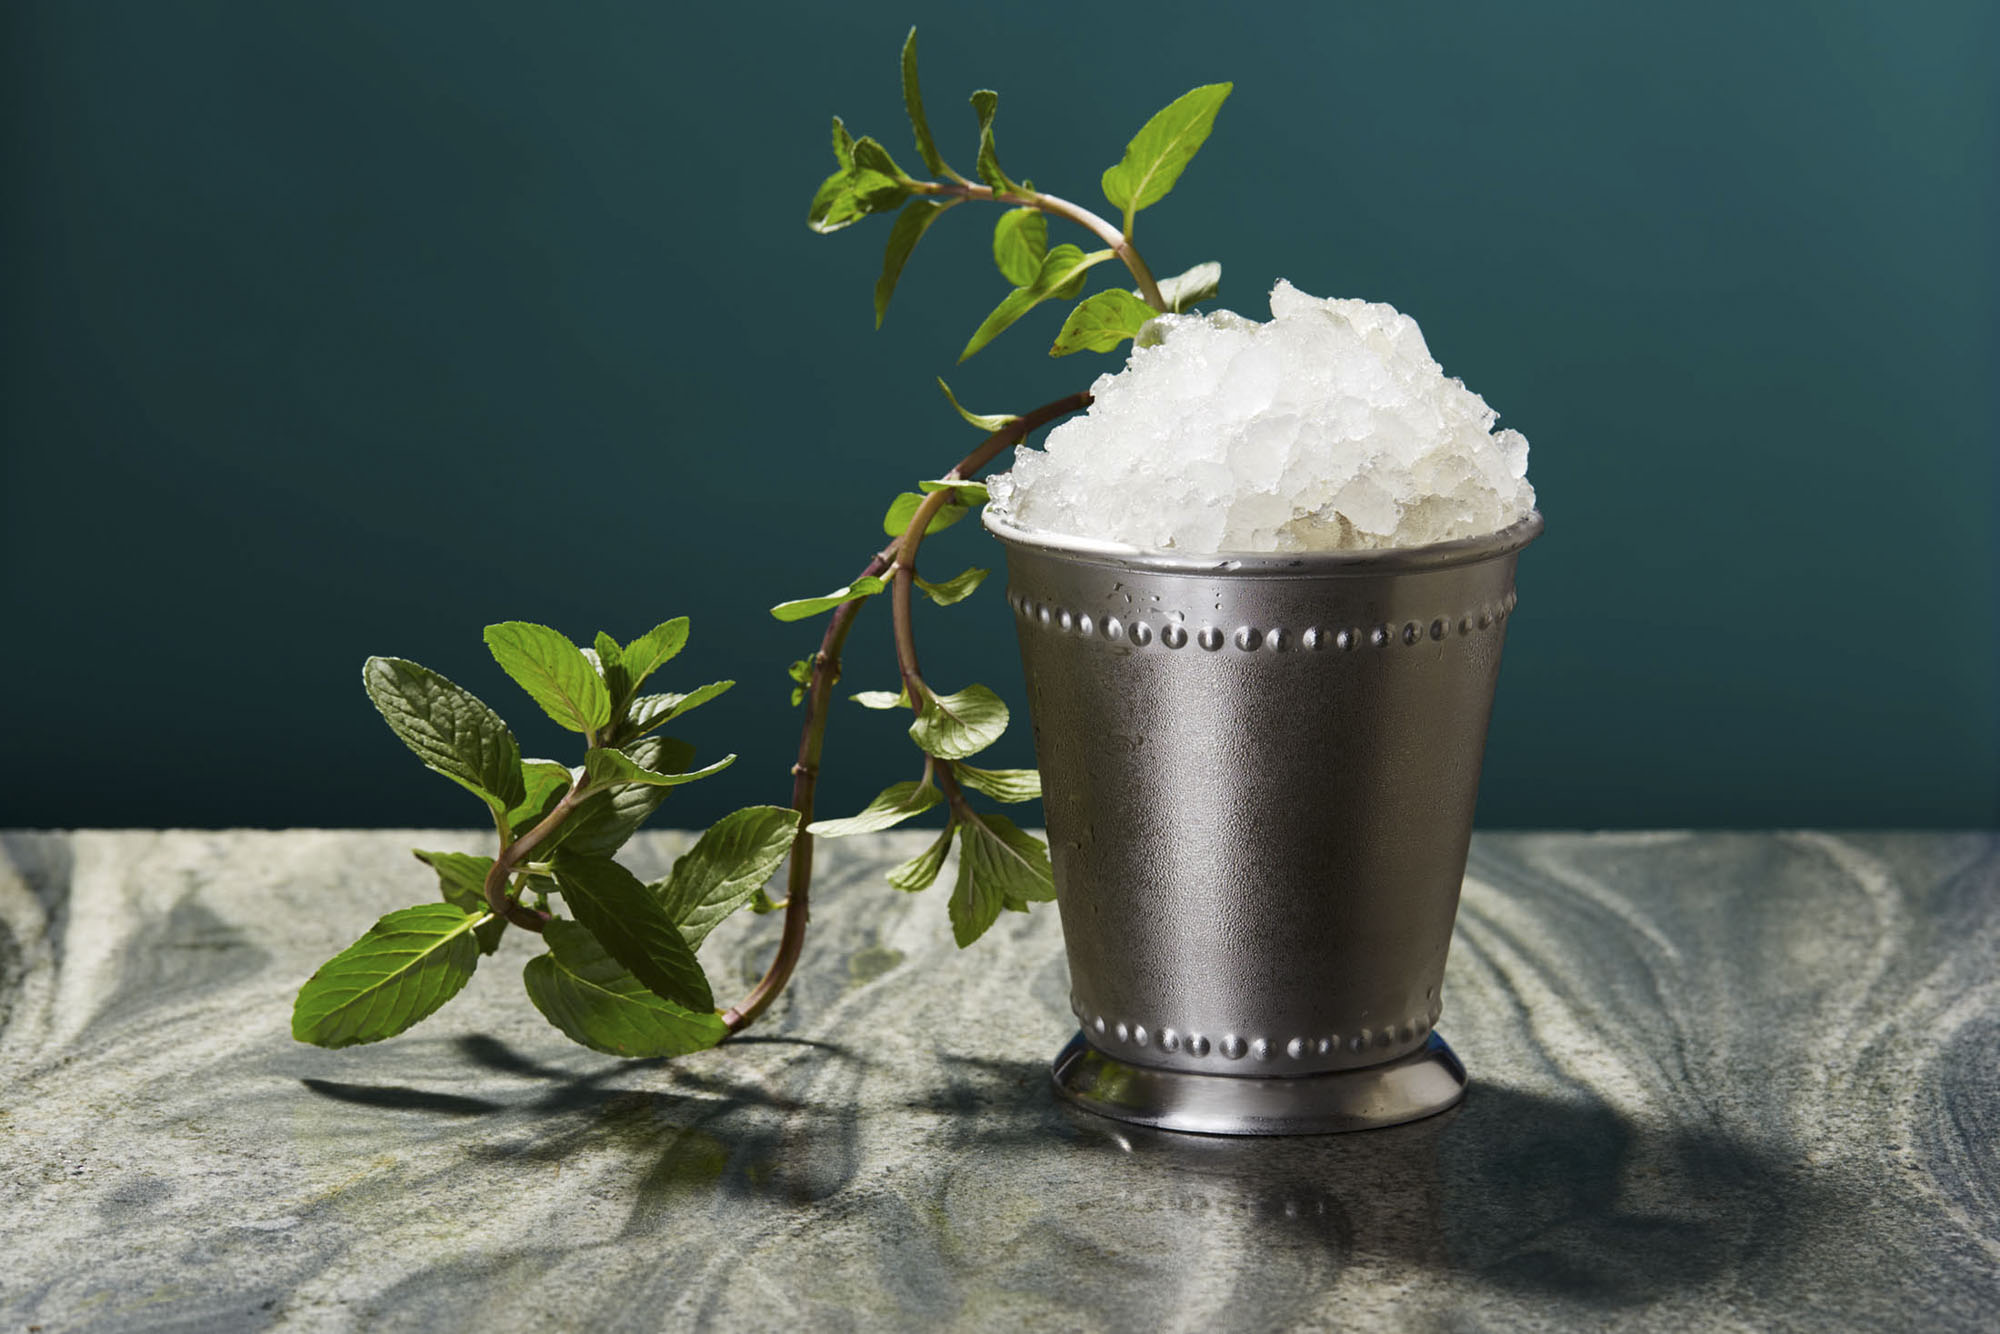 A cool, delicious Mint Julep cocktail